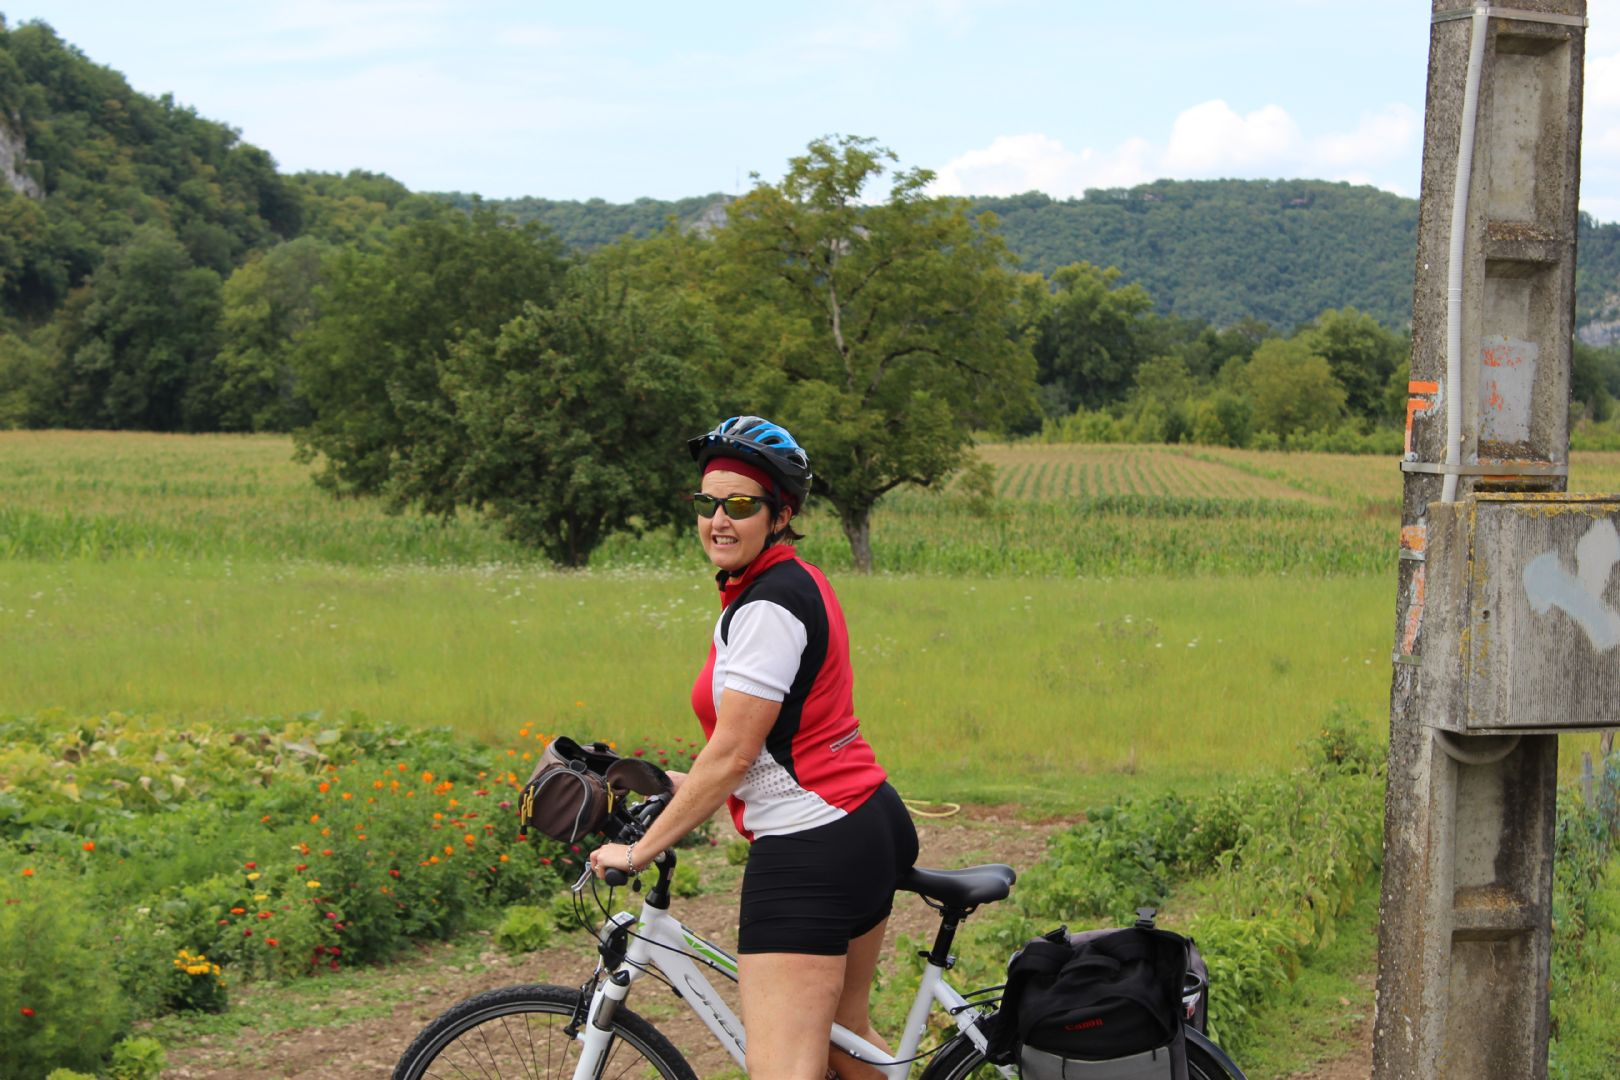 IMG_0692.JPG - France - Dordogne Delights - Self-Guided Leisure Cycling Holiday - Leisure Cycling